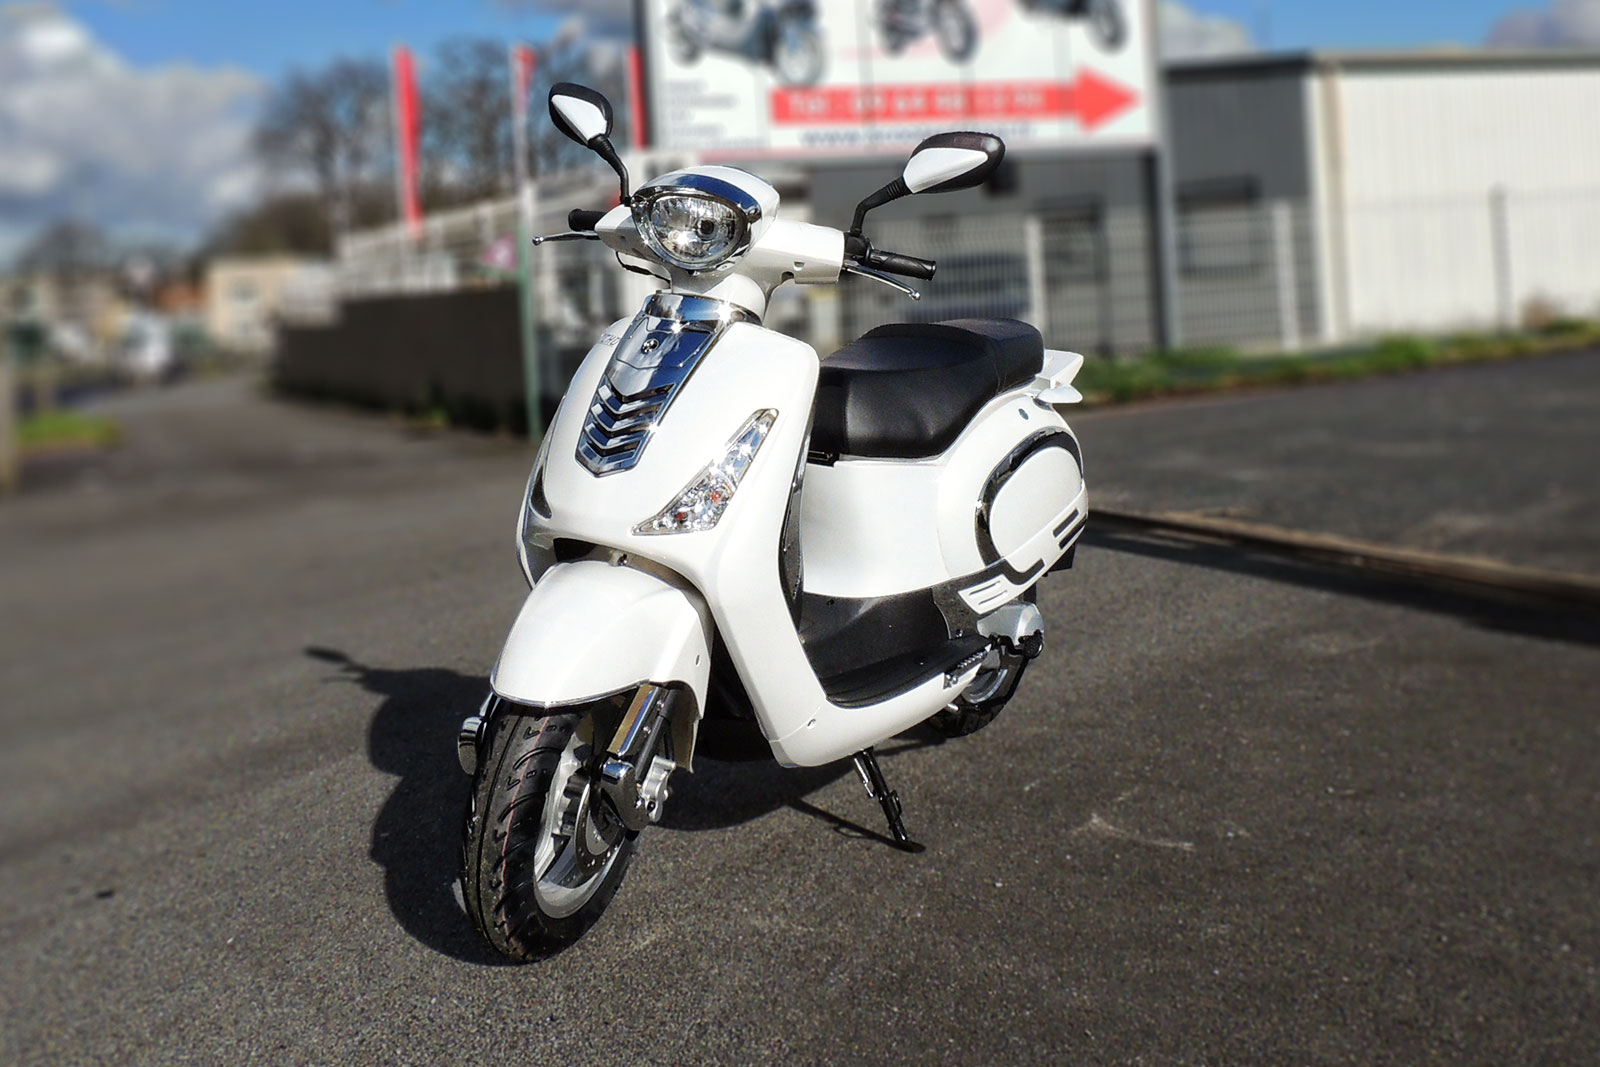 SCOOTER-50-ECCHO-EAGLE-WING-02